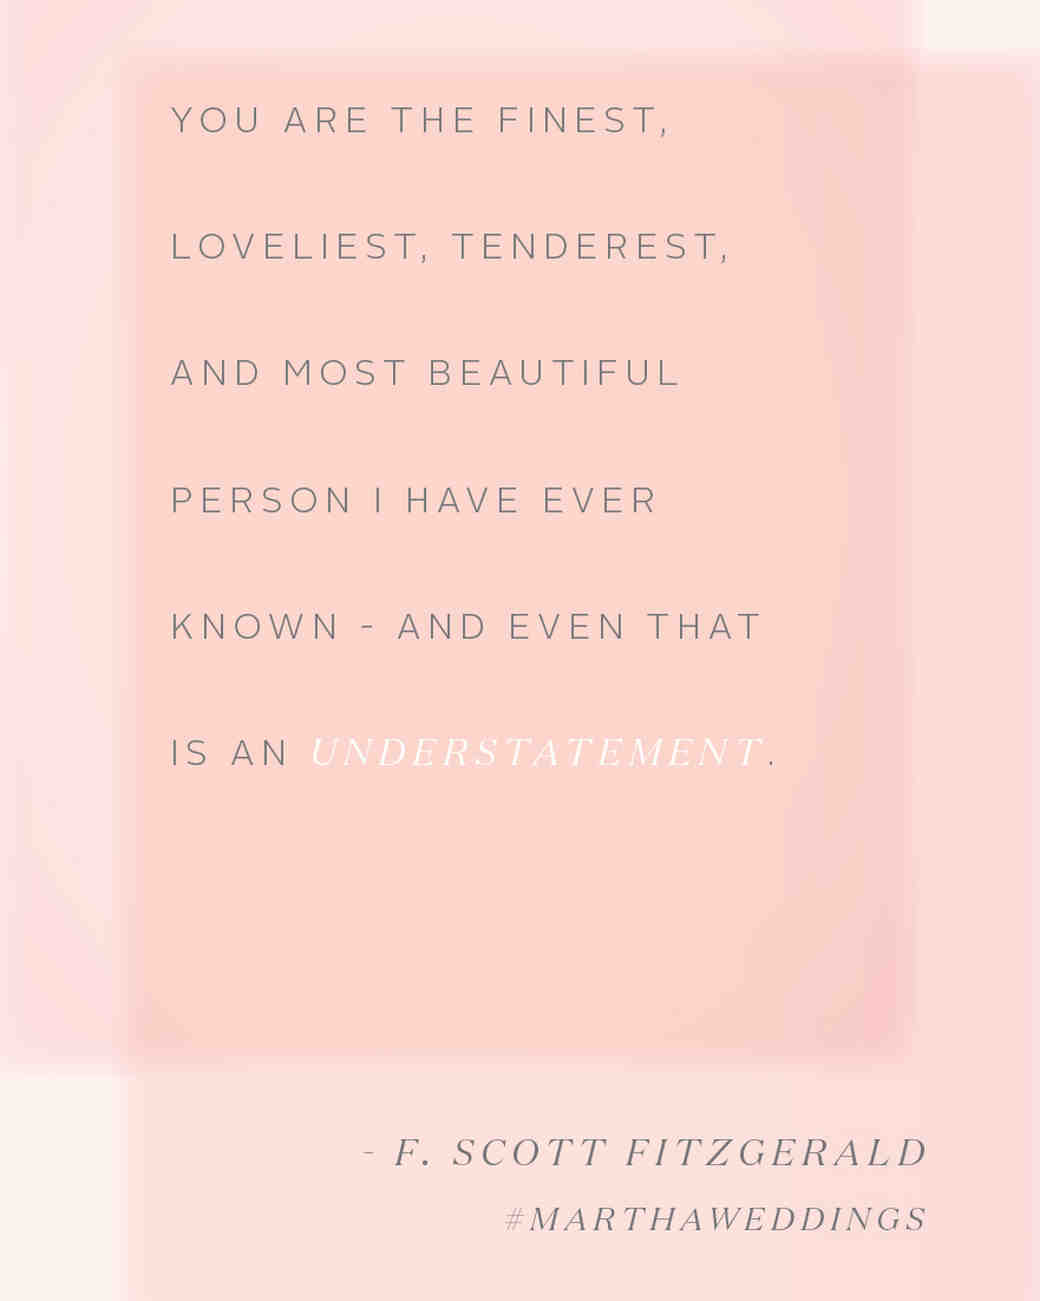 Love Quotes F Scott Fitzgerald Best The 20 Best Love Quotes Of All Time  Martha Stewart Weddings